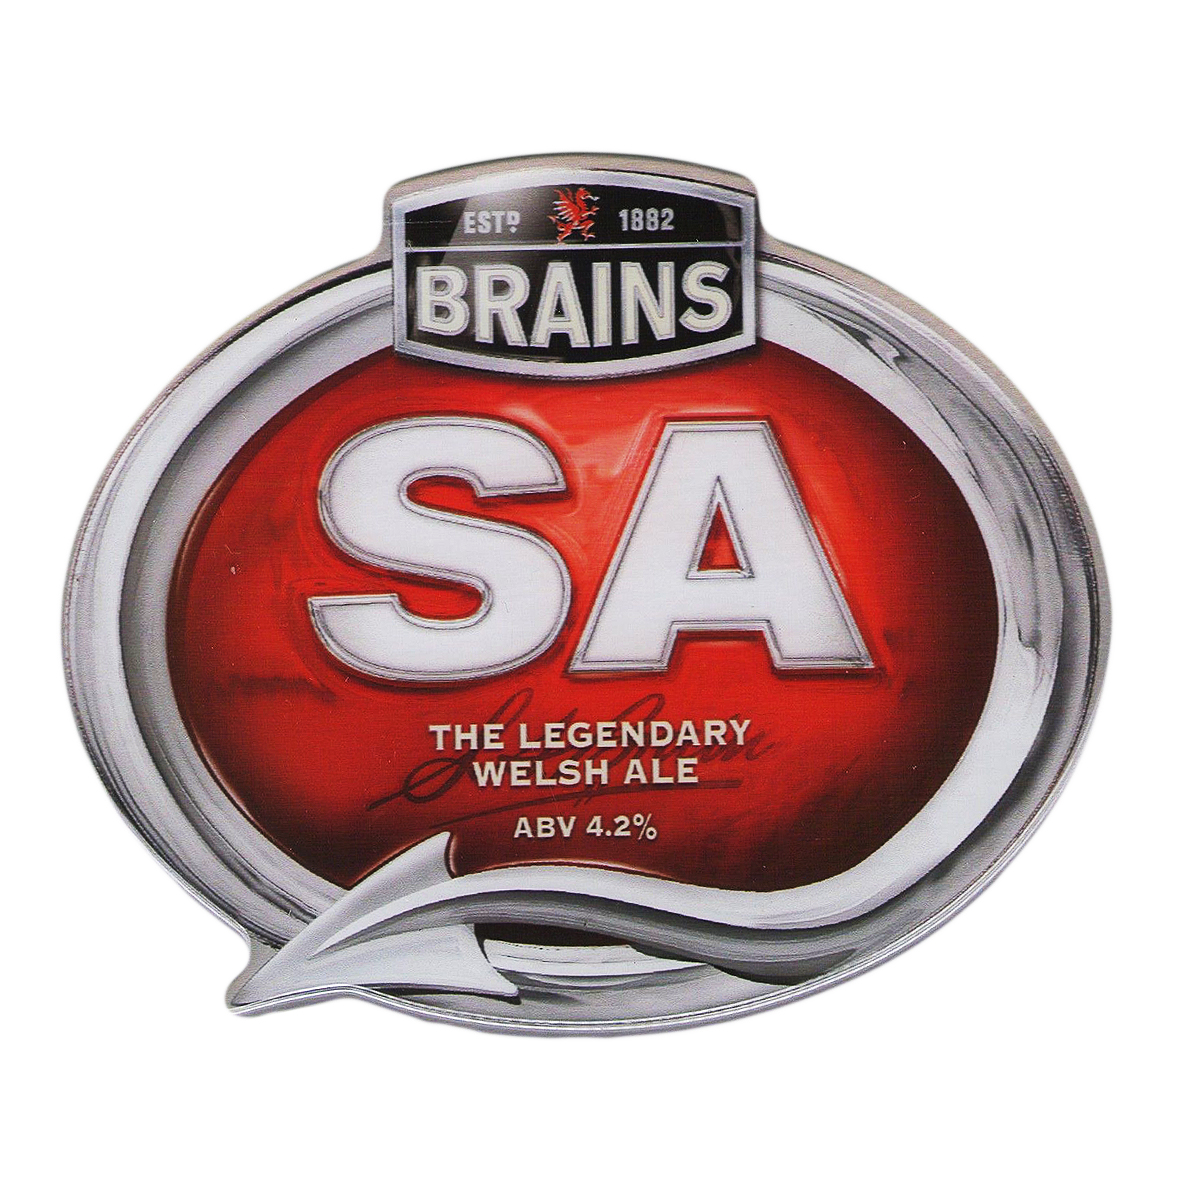 Brains Beer Glass